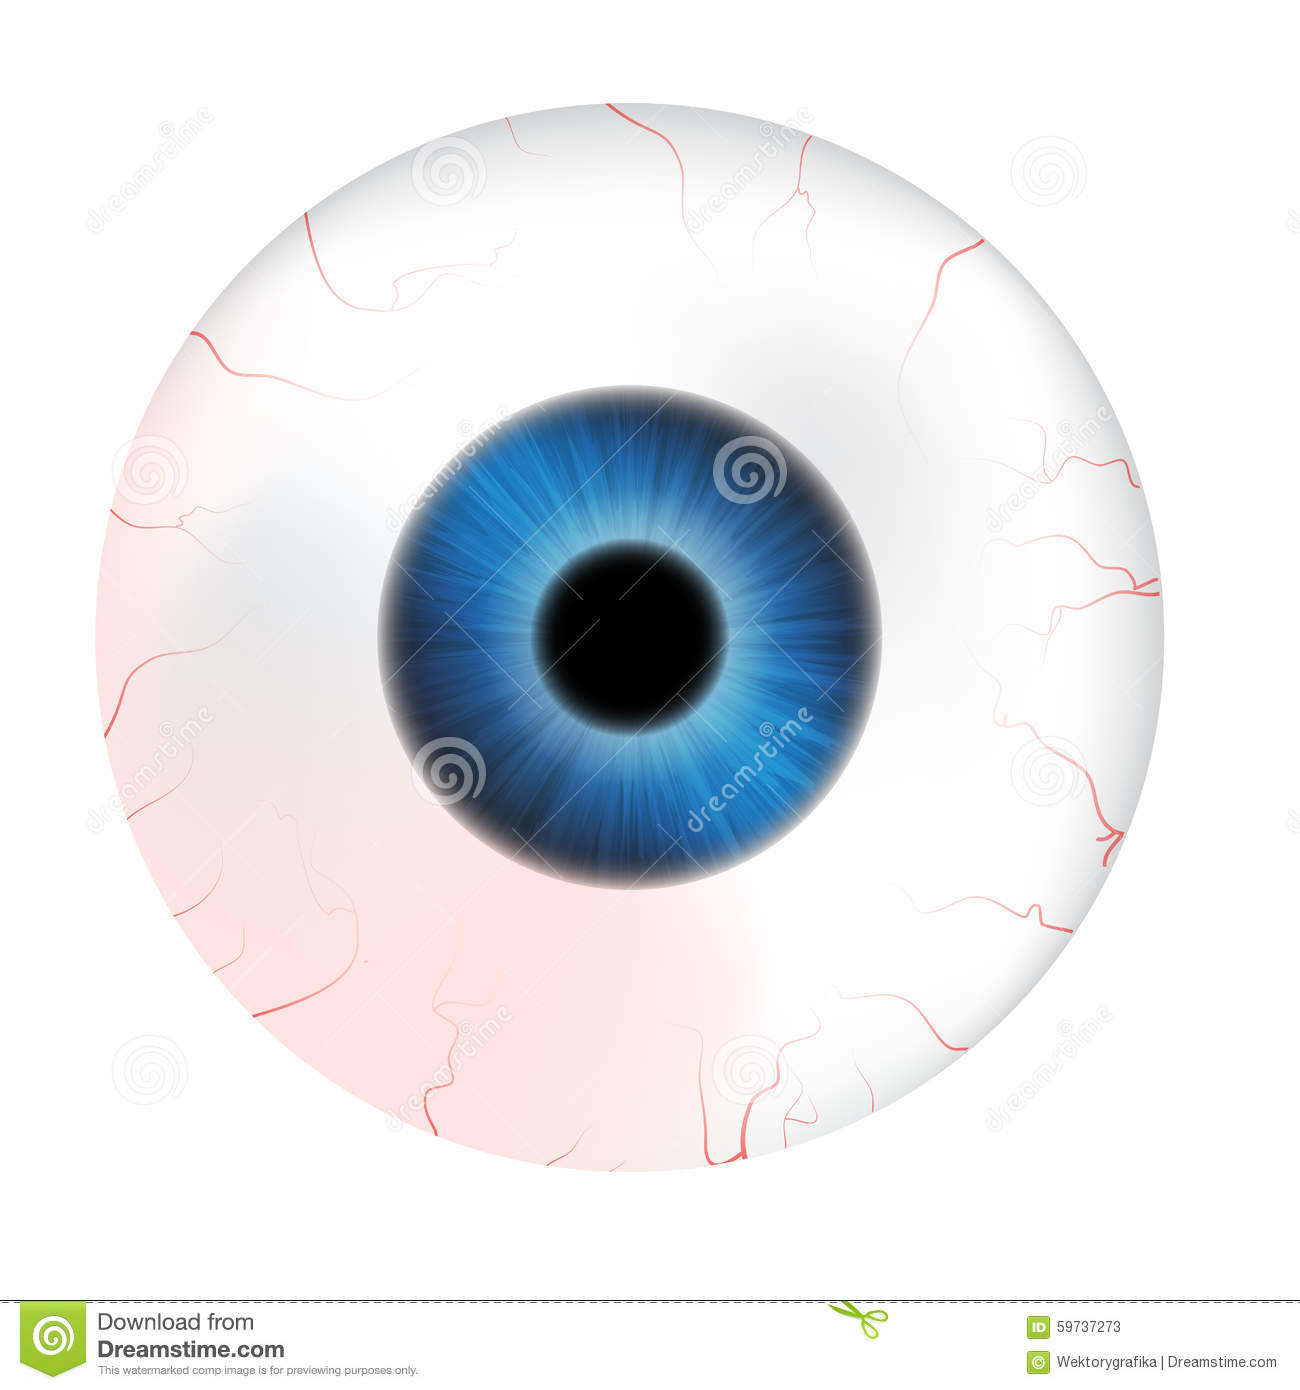 Image Of Realistic Human Eye Ball With Colorful Pupil, Iris